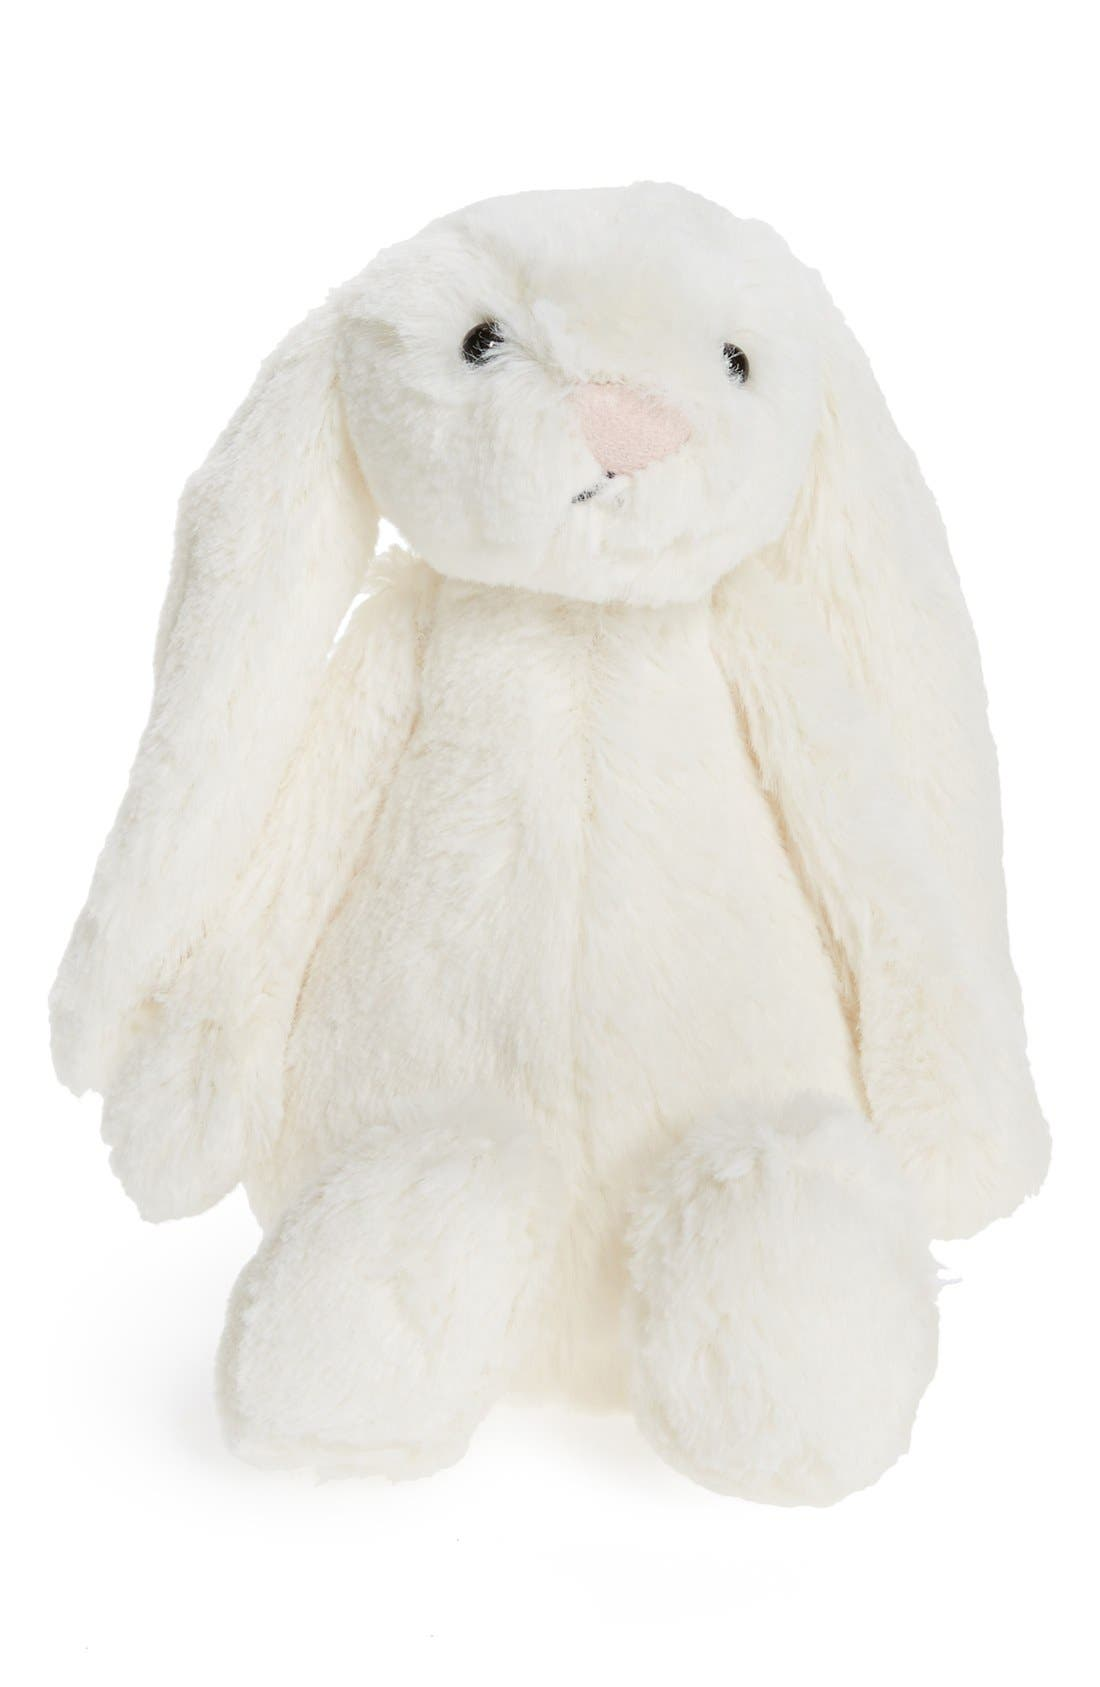 'Small Bashful Bunny' Stuffed Animal,                         Main,                         color, Cream